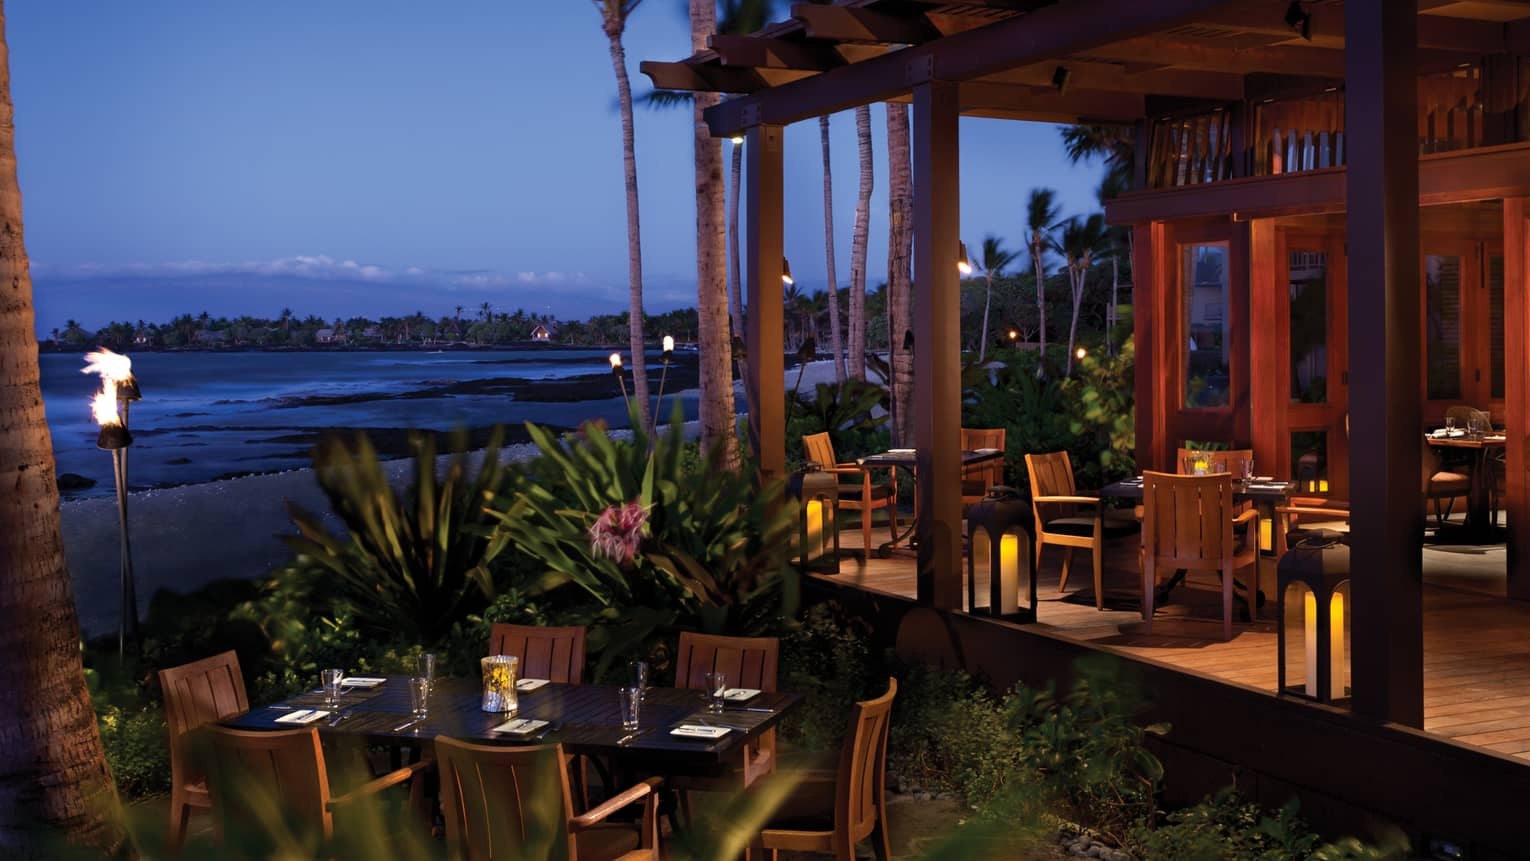 ULU Sushi Lounge dining patio near beach at dusk